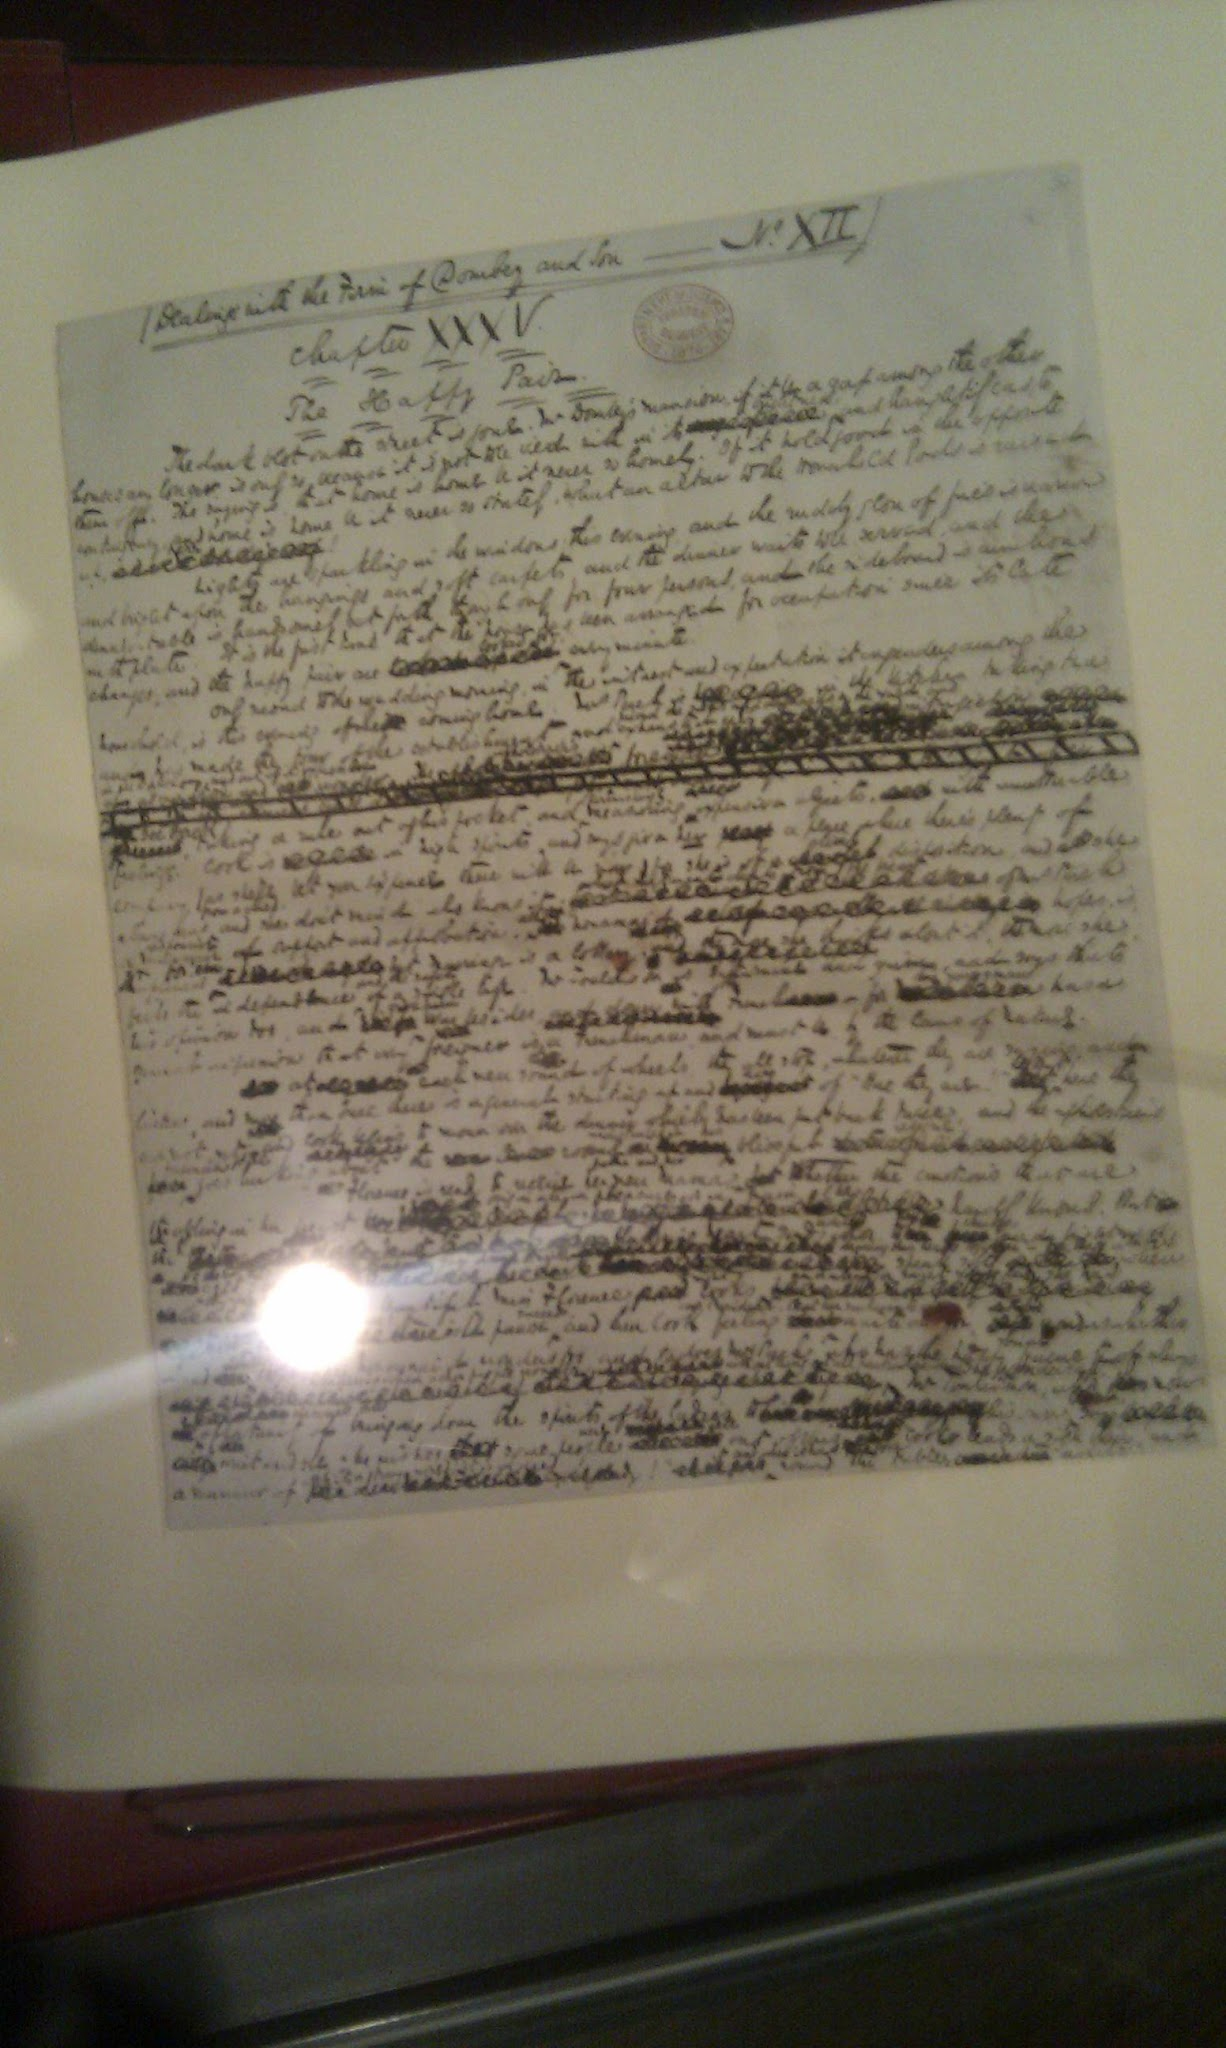 First draft of Dombey and Son by Charles Dickens